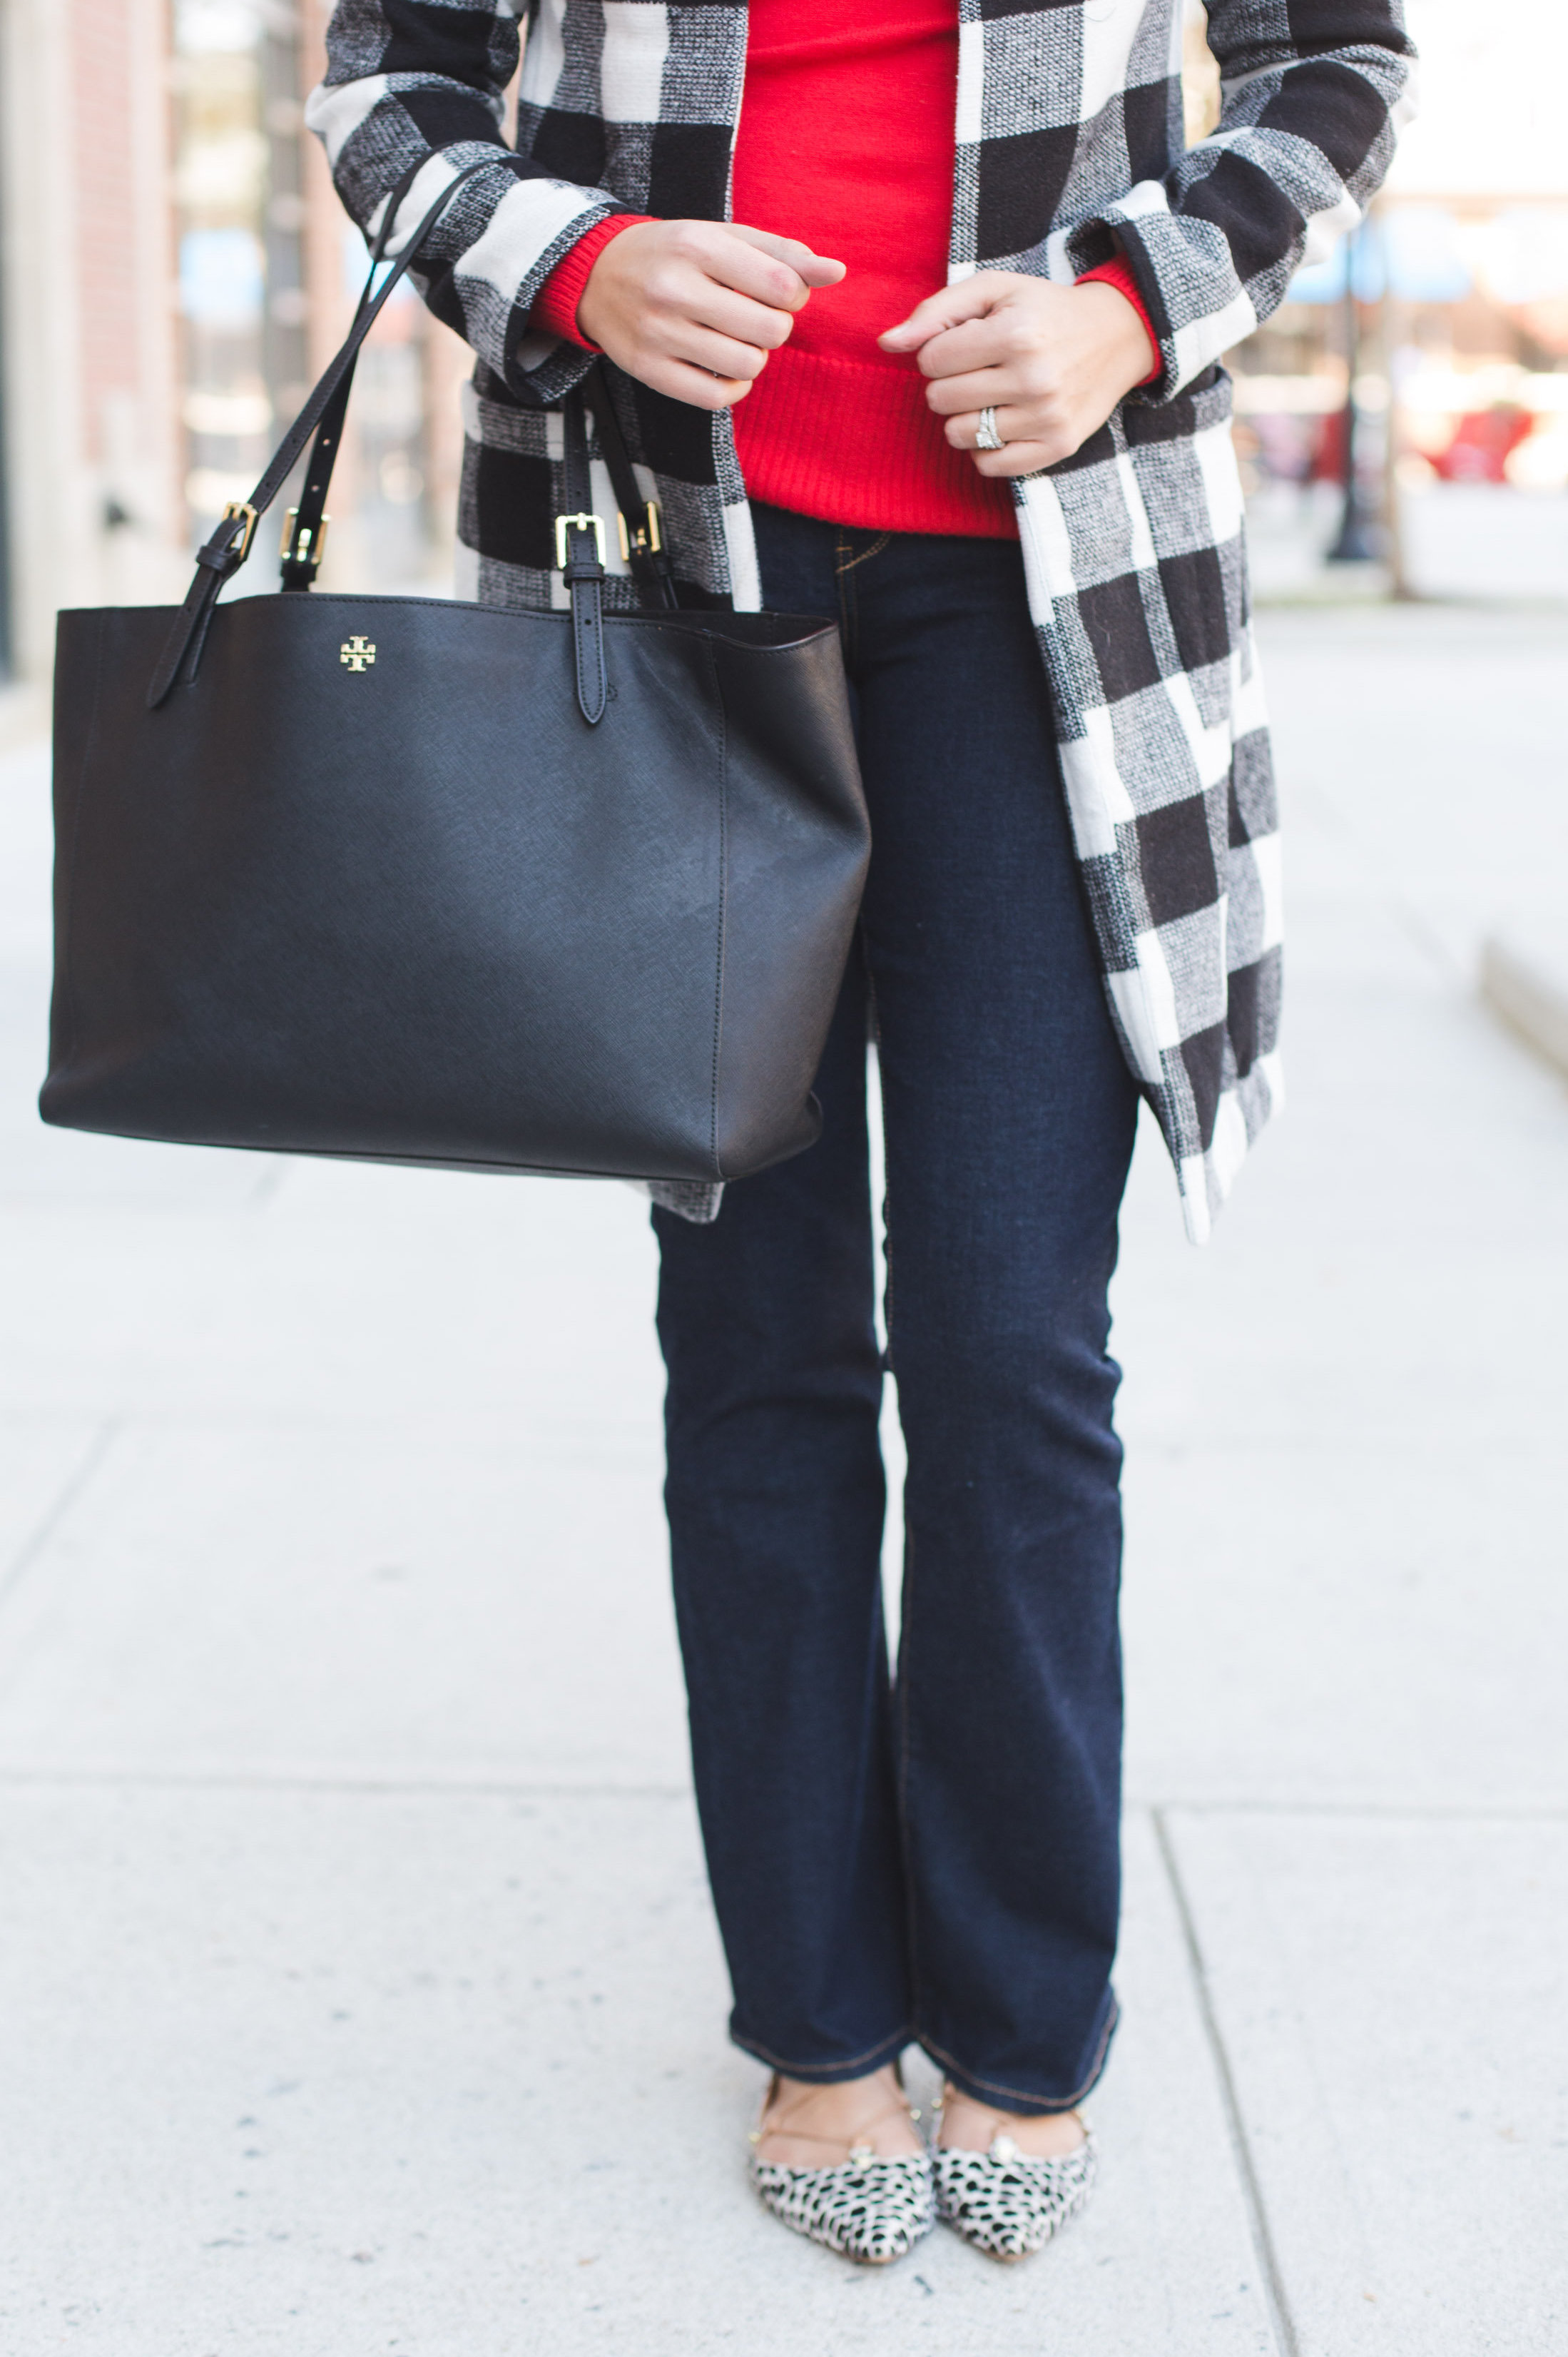 bootcut jeans outfit - bootcut jeans with buffalo plaid coat and red turtleneck | www.bylaurenm.com